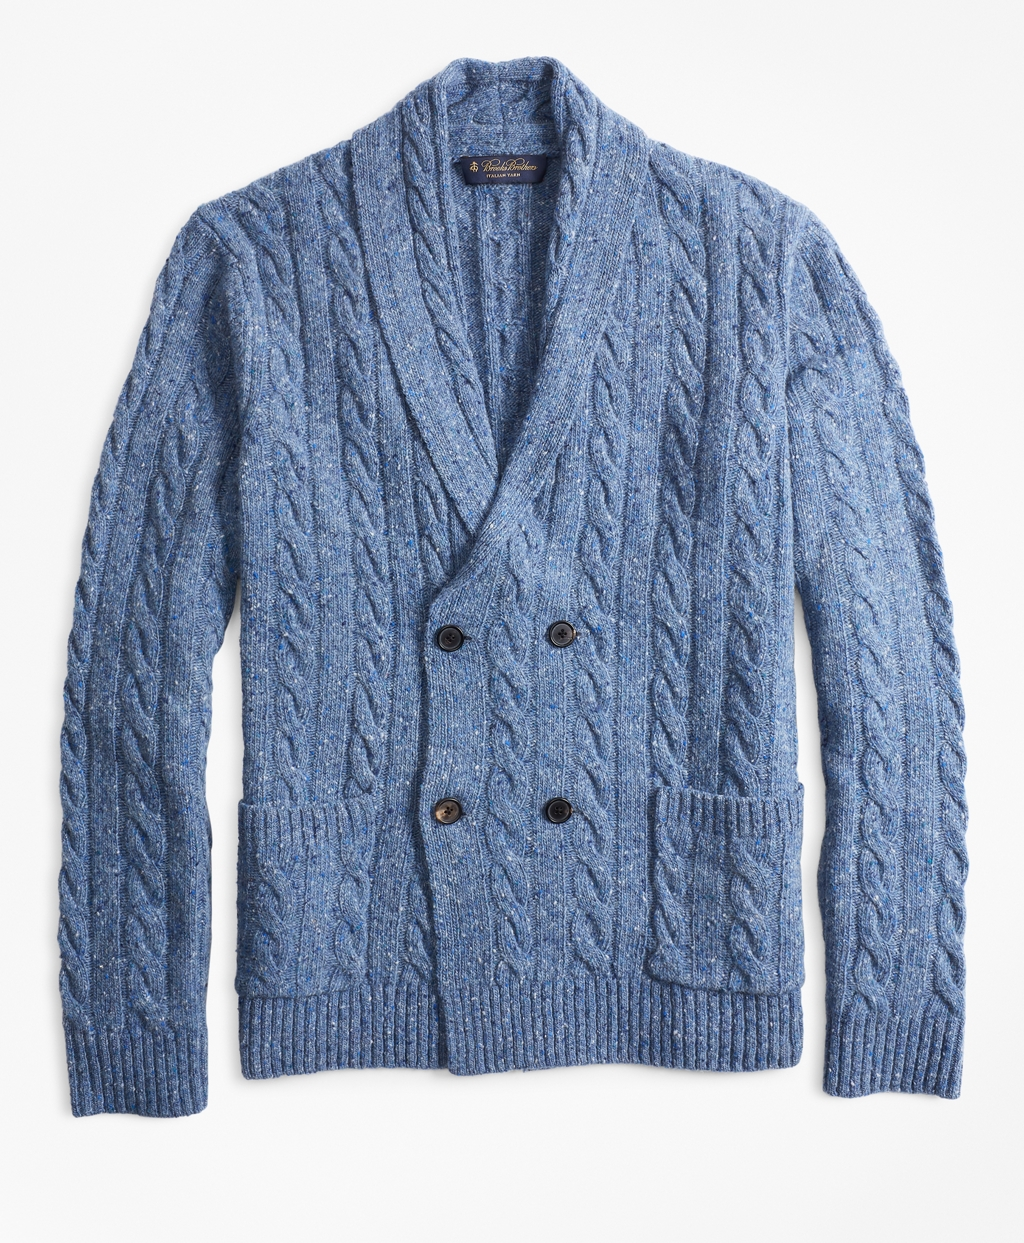 blue sweater dad gifts